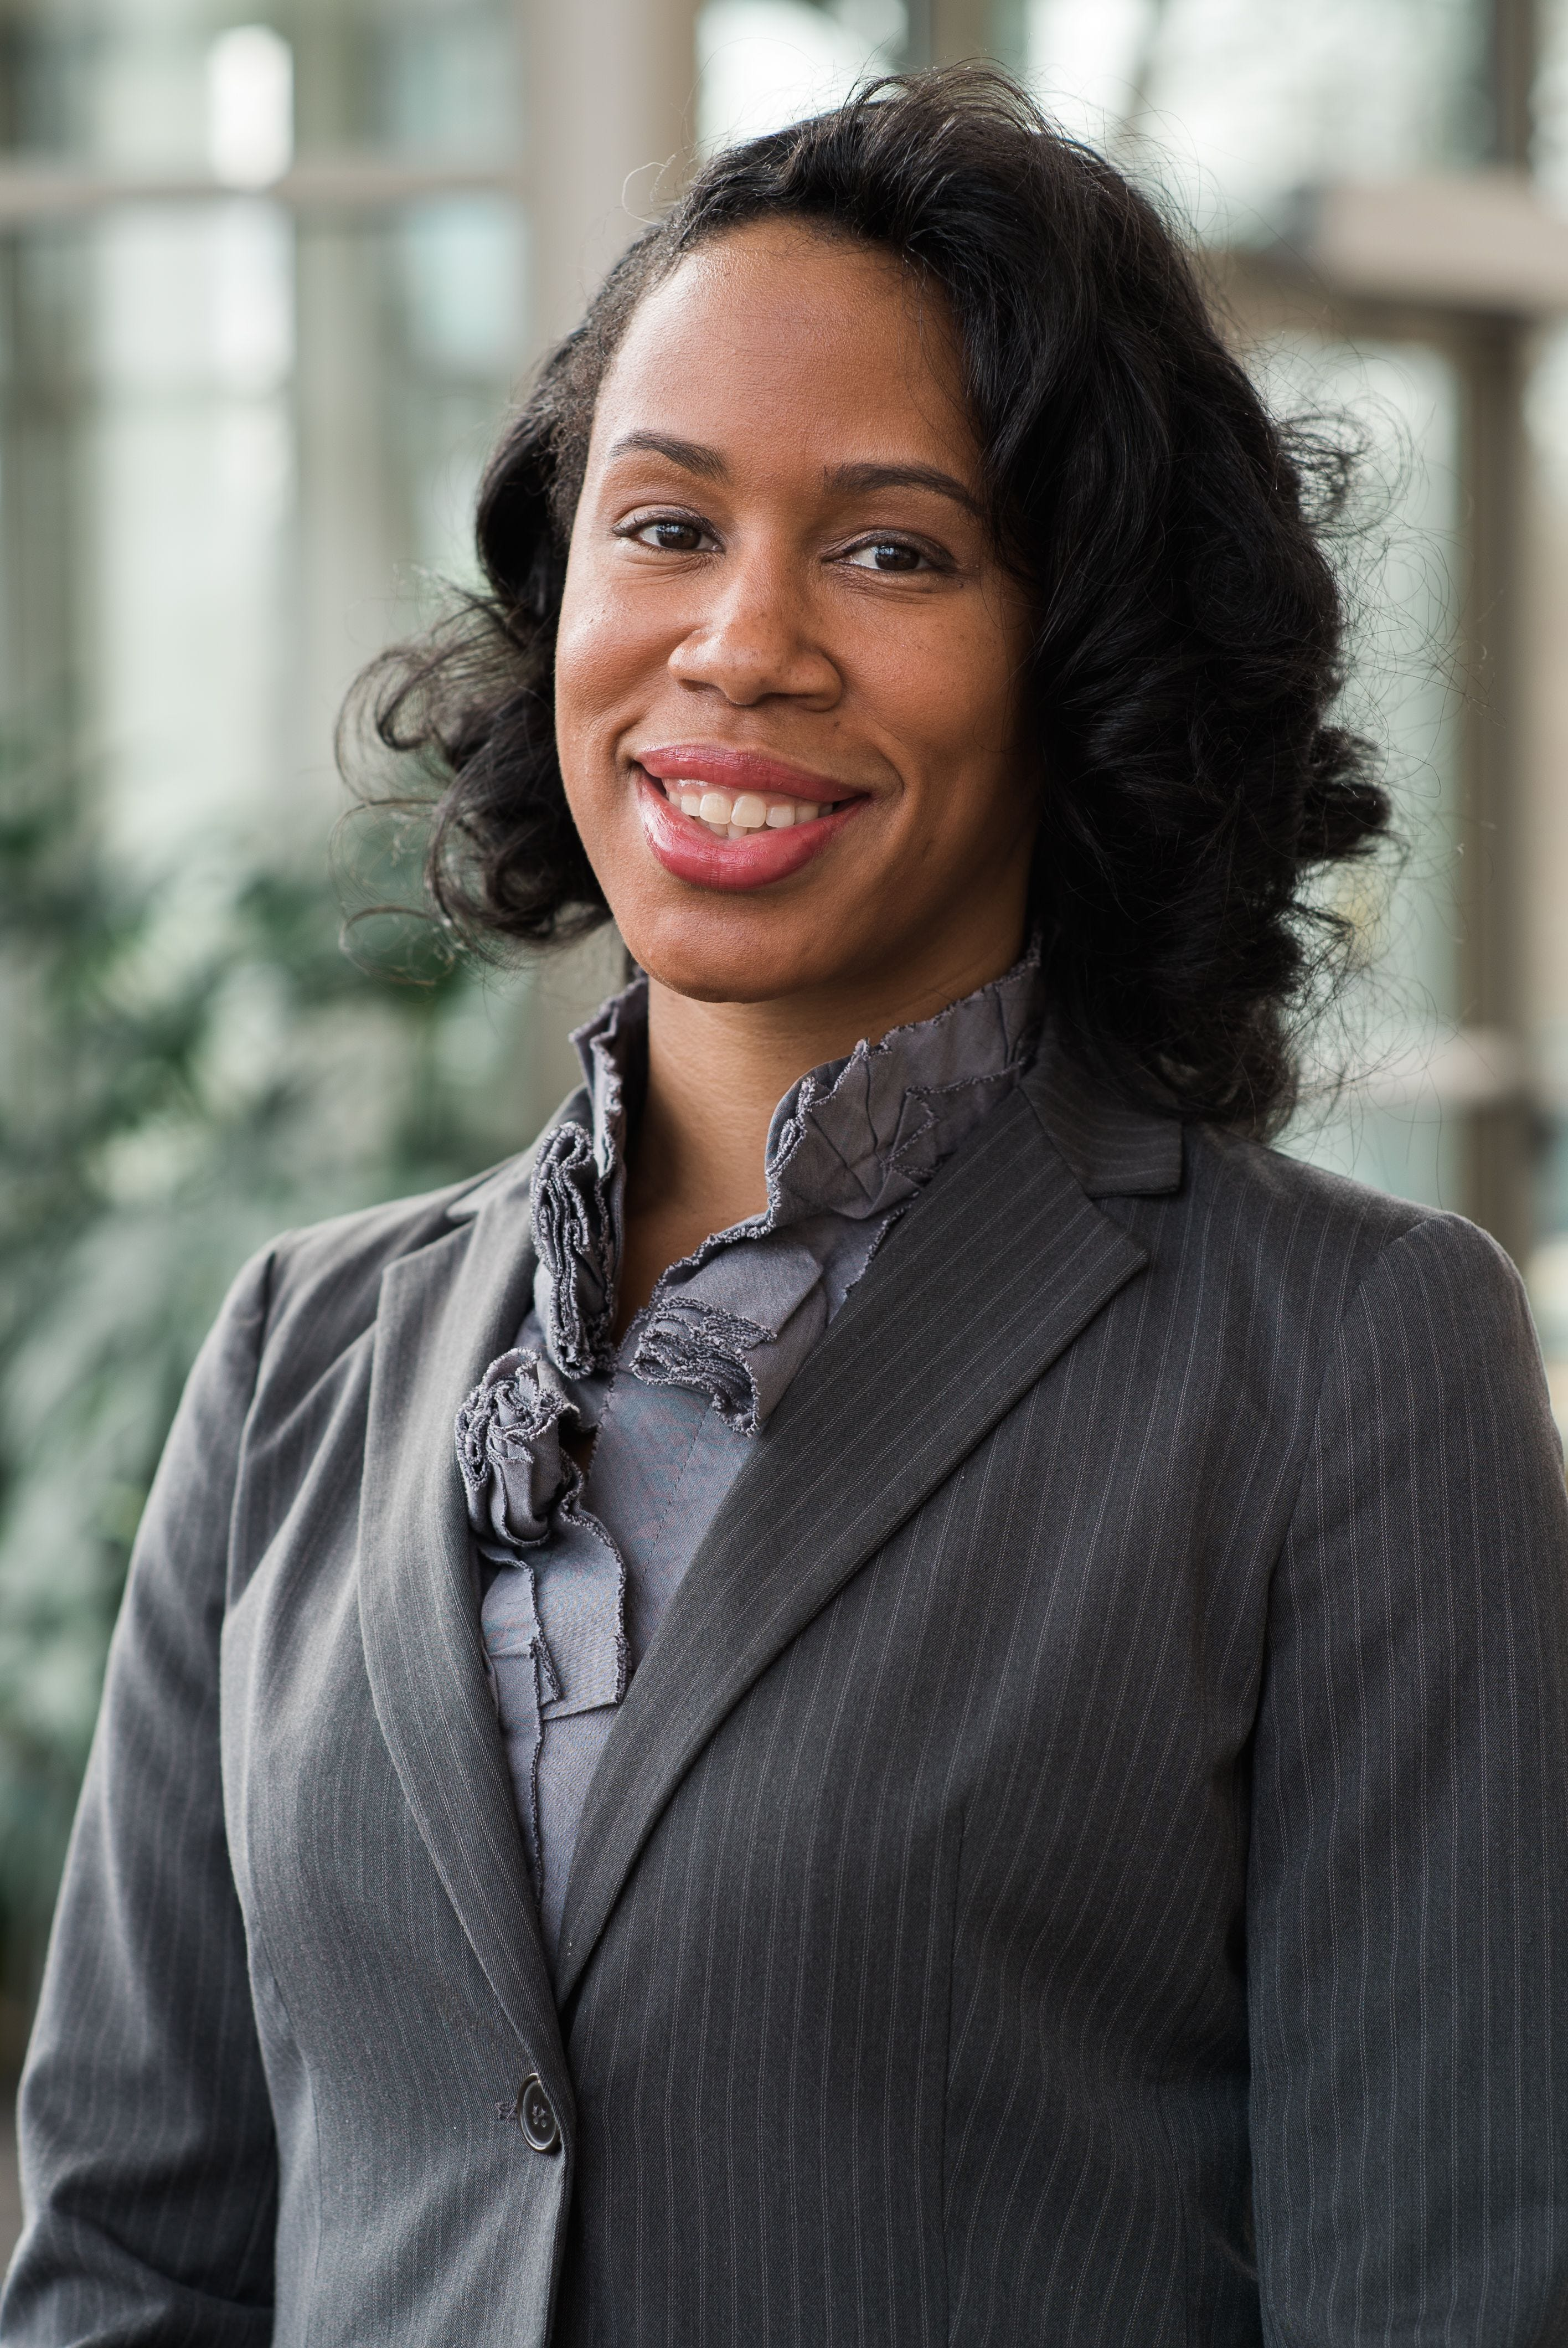 Dr. Candace Robertson-James is an assistant professor of public health and director of the bachelor and master of public health programs at La Salle University in Philadelphia.